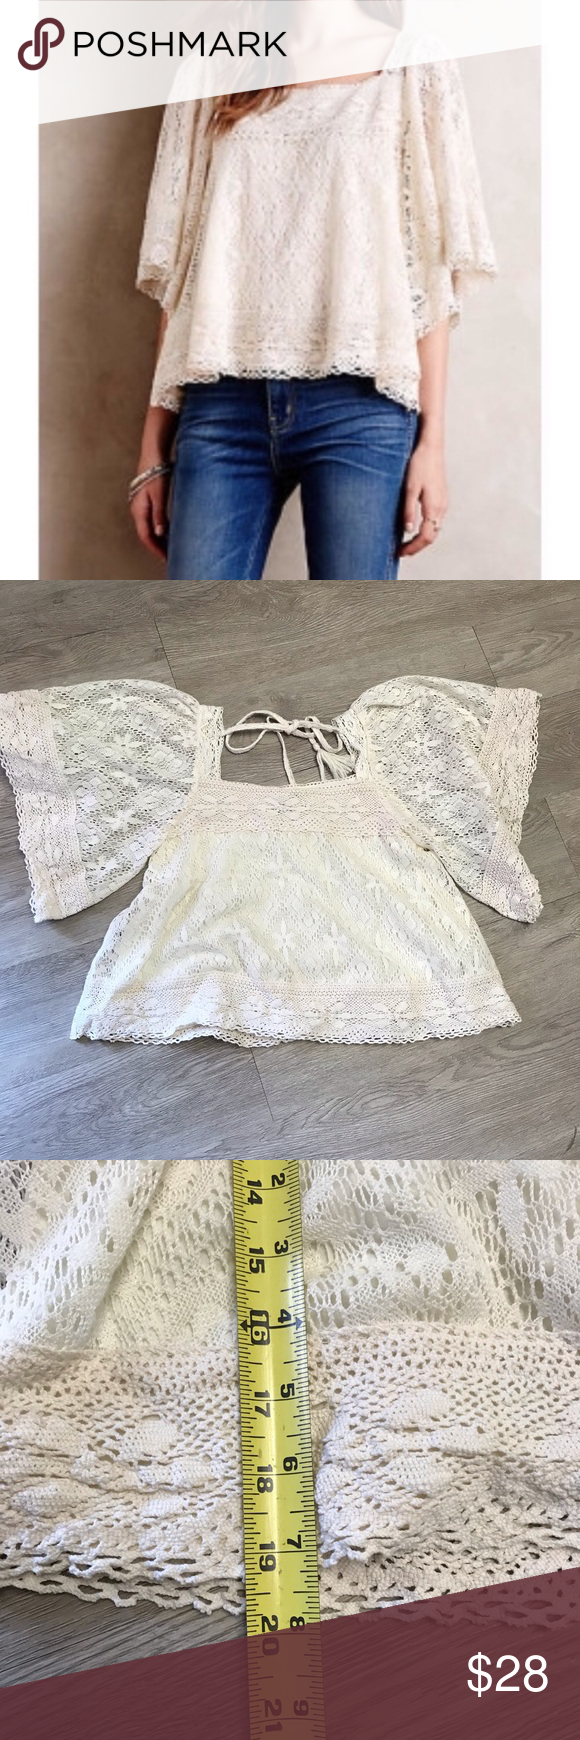 , Anthropologie Vanessa Virginia lace crochet top Boho festival peasant top  Wide sleeves Lined Tassel tie in back Gently used condition no holes no sta…, Anja Rubik Blog, Anja Rubik Blog